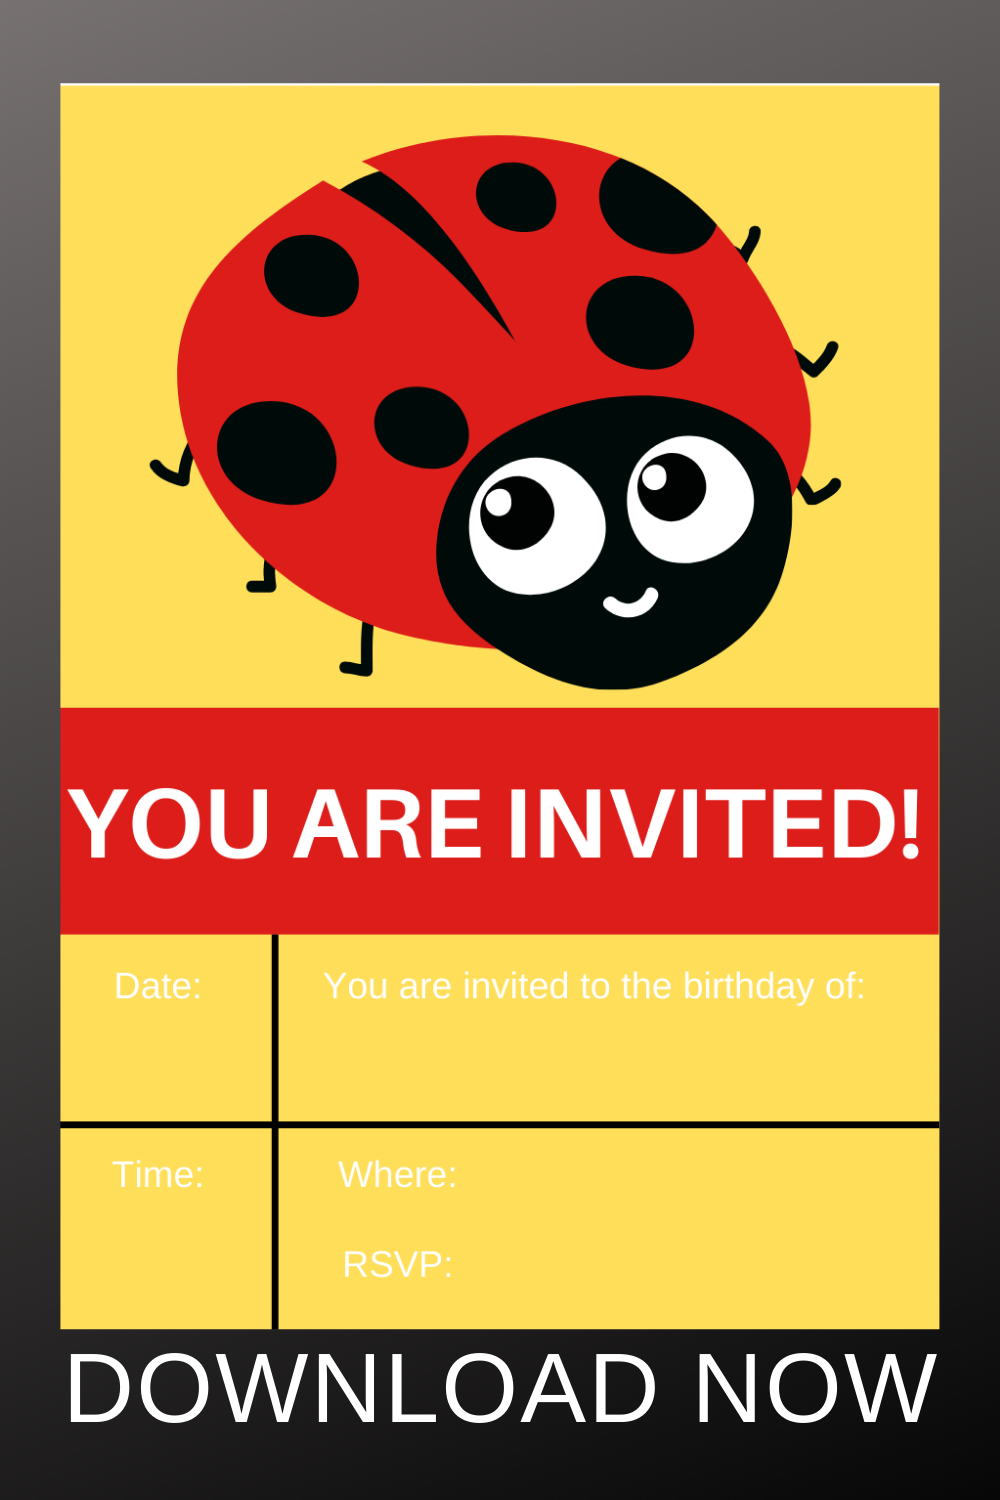 free download: ladybug invitations for a toddlers birthday party